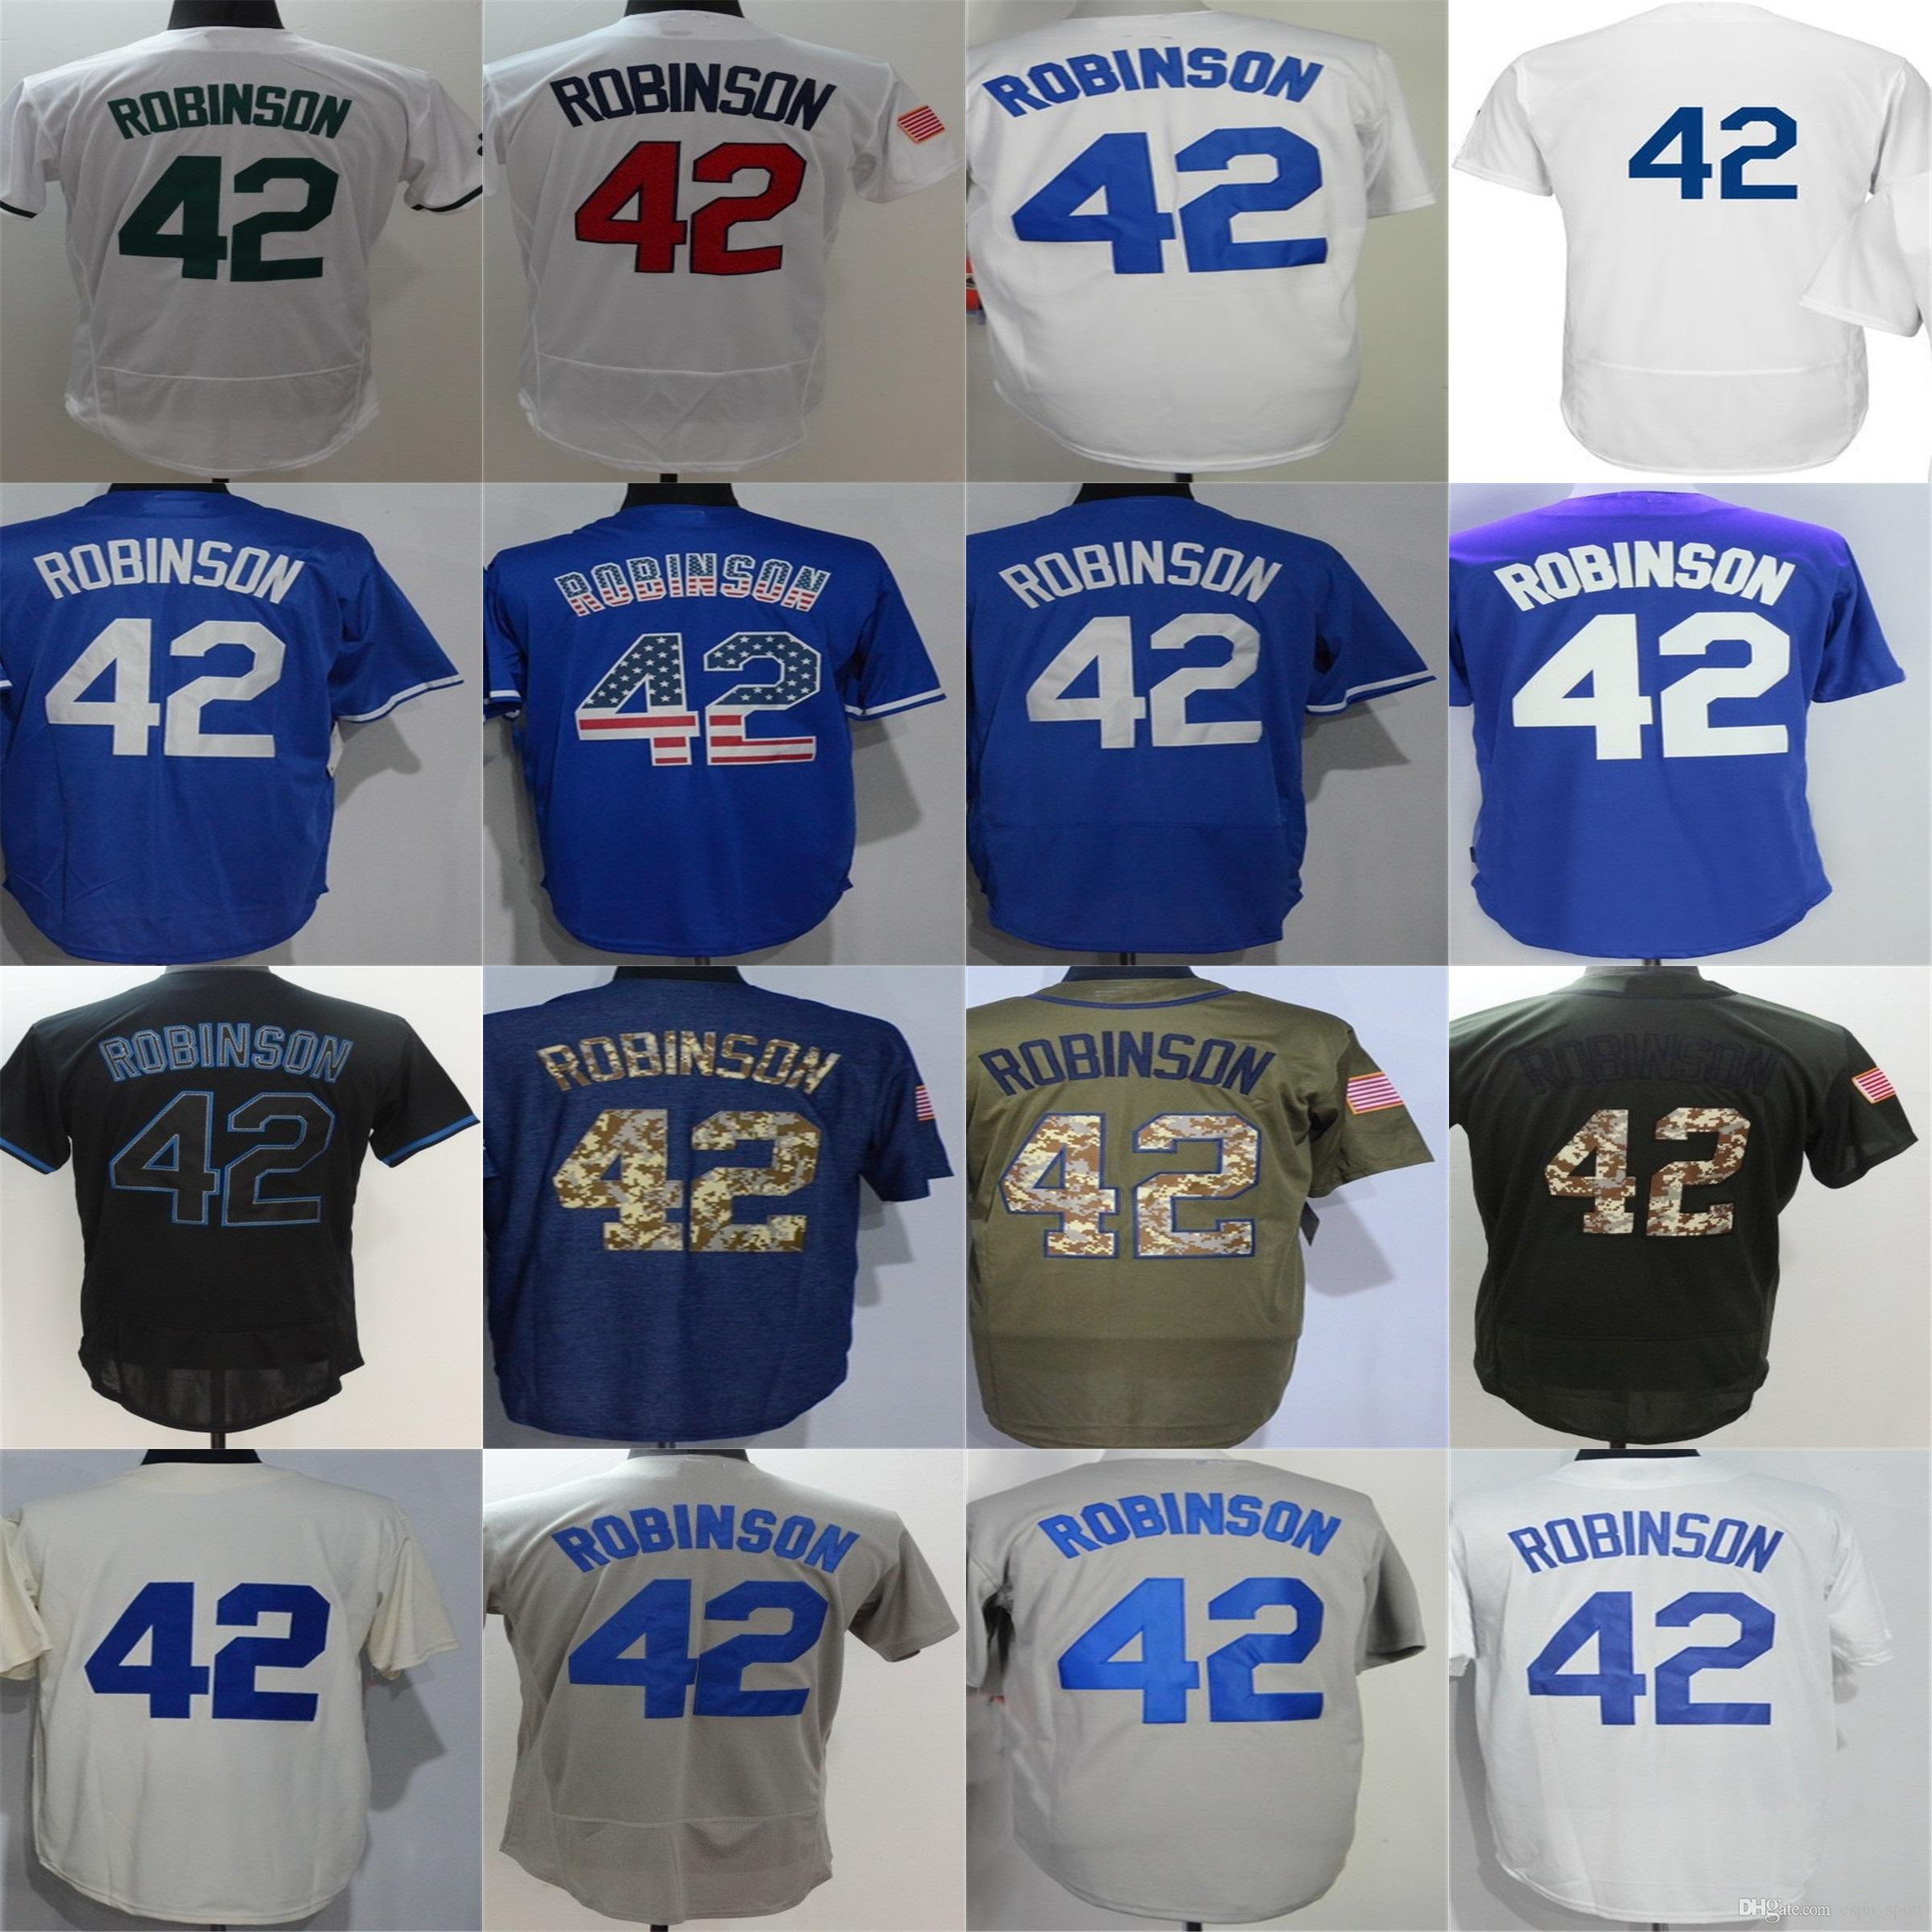 2018 Newest Mens Brooklyn Los Angele 42 Jackie Robinson White 1955  Throwback M&N Dual Patch Jersey Cream Blue Black Green Grey Baseball Jerseys  From ...